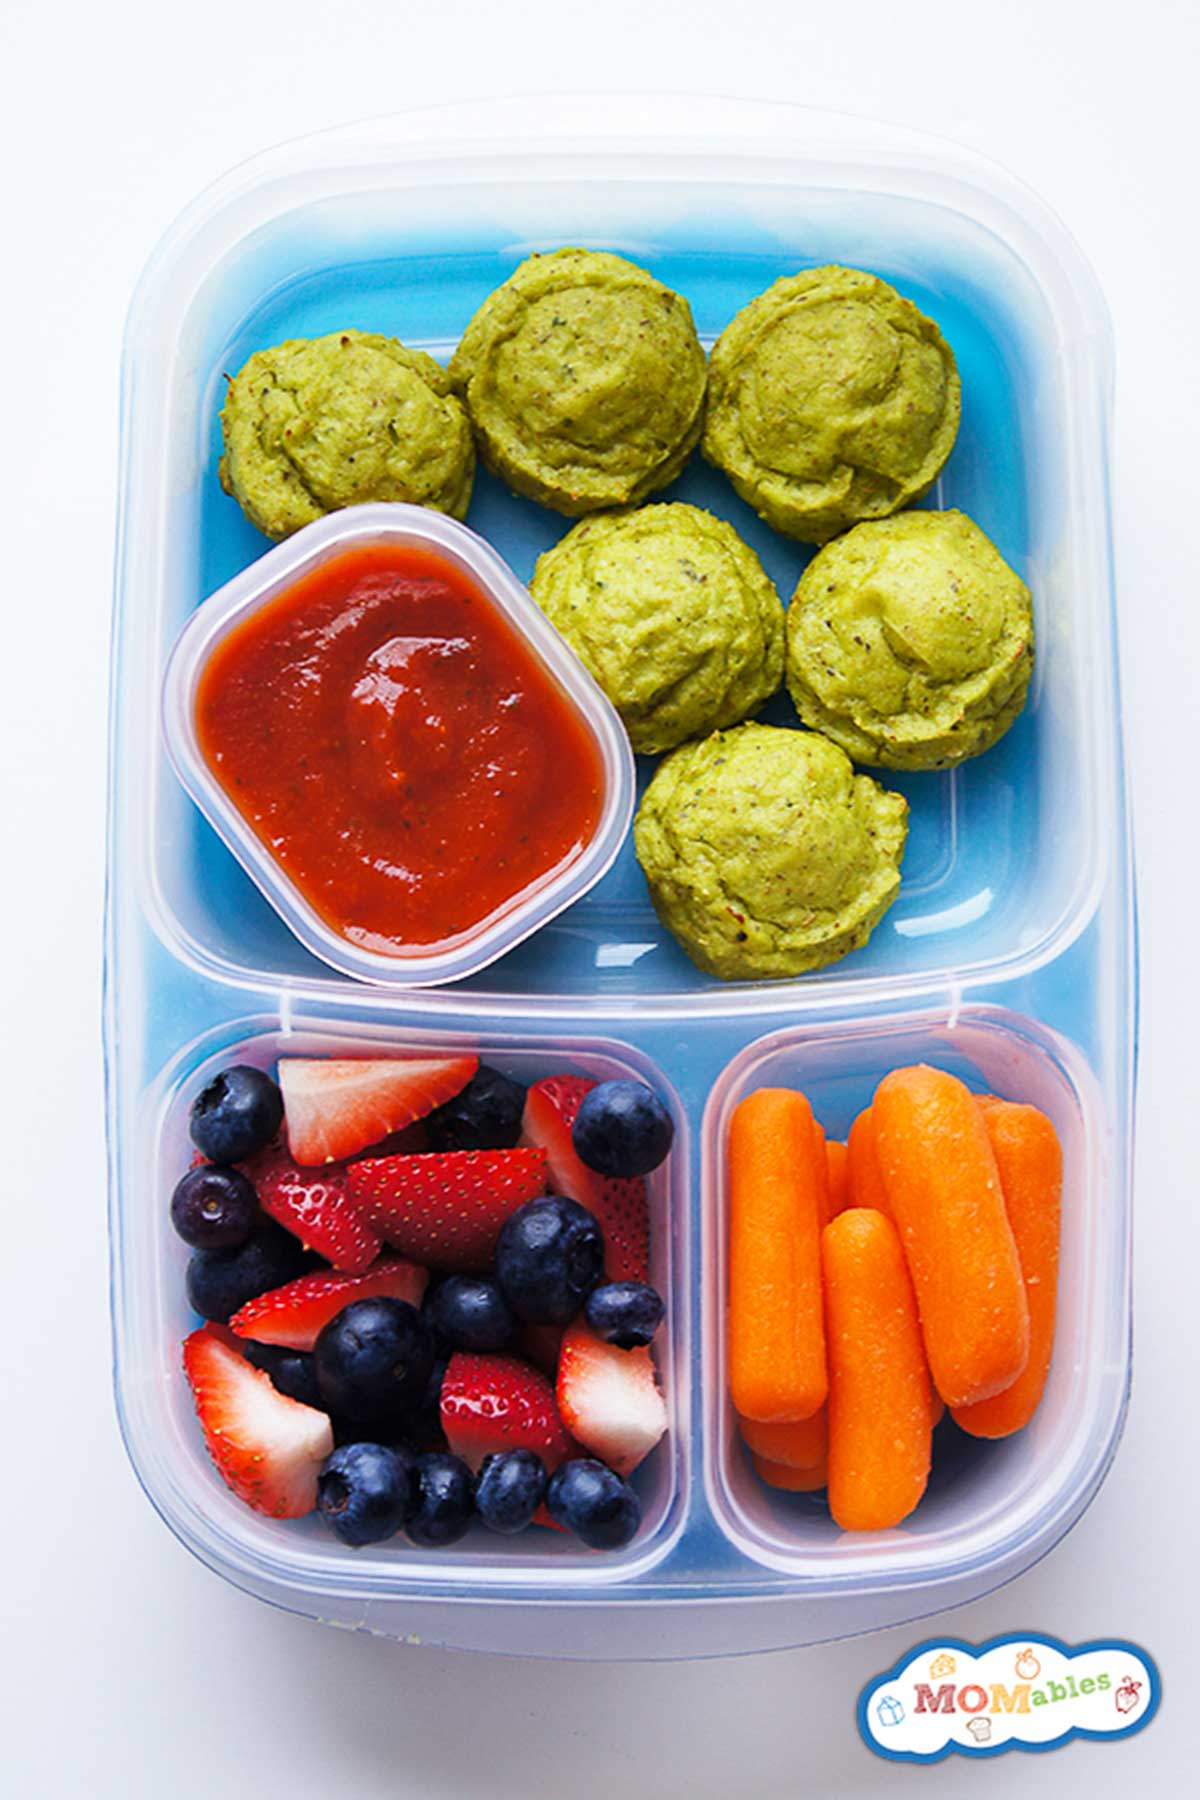 veggie nuggets in a lunch box with fruit and carrots